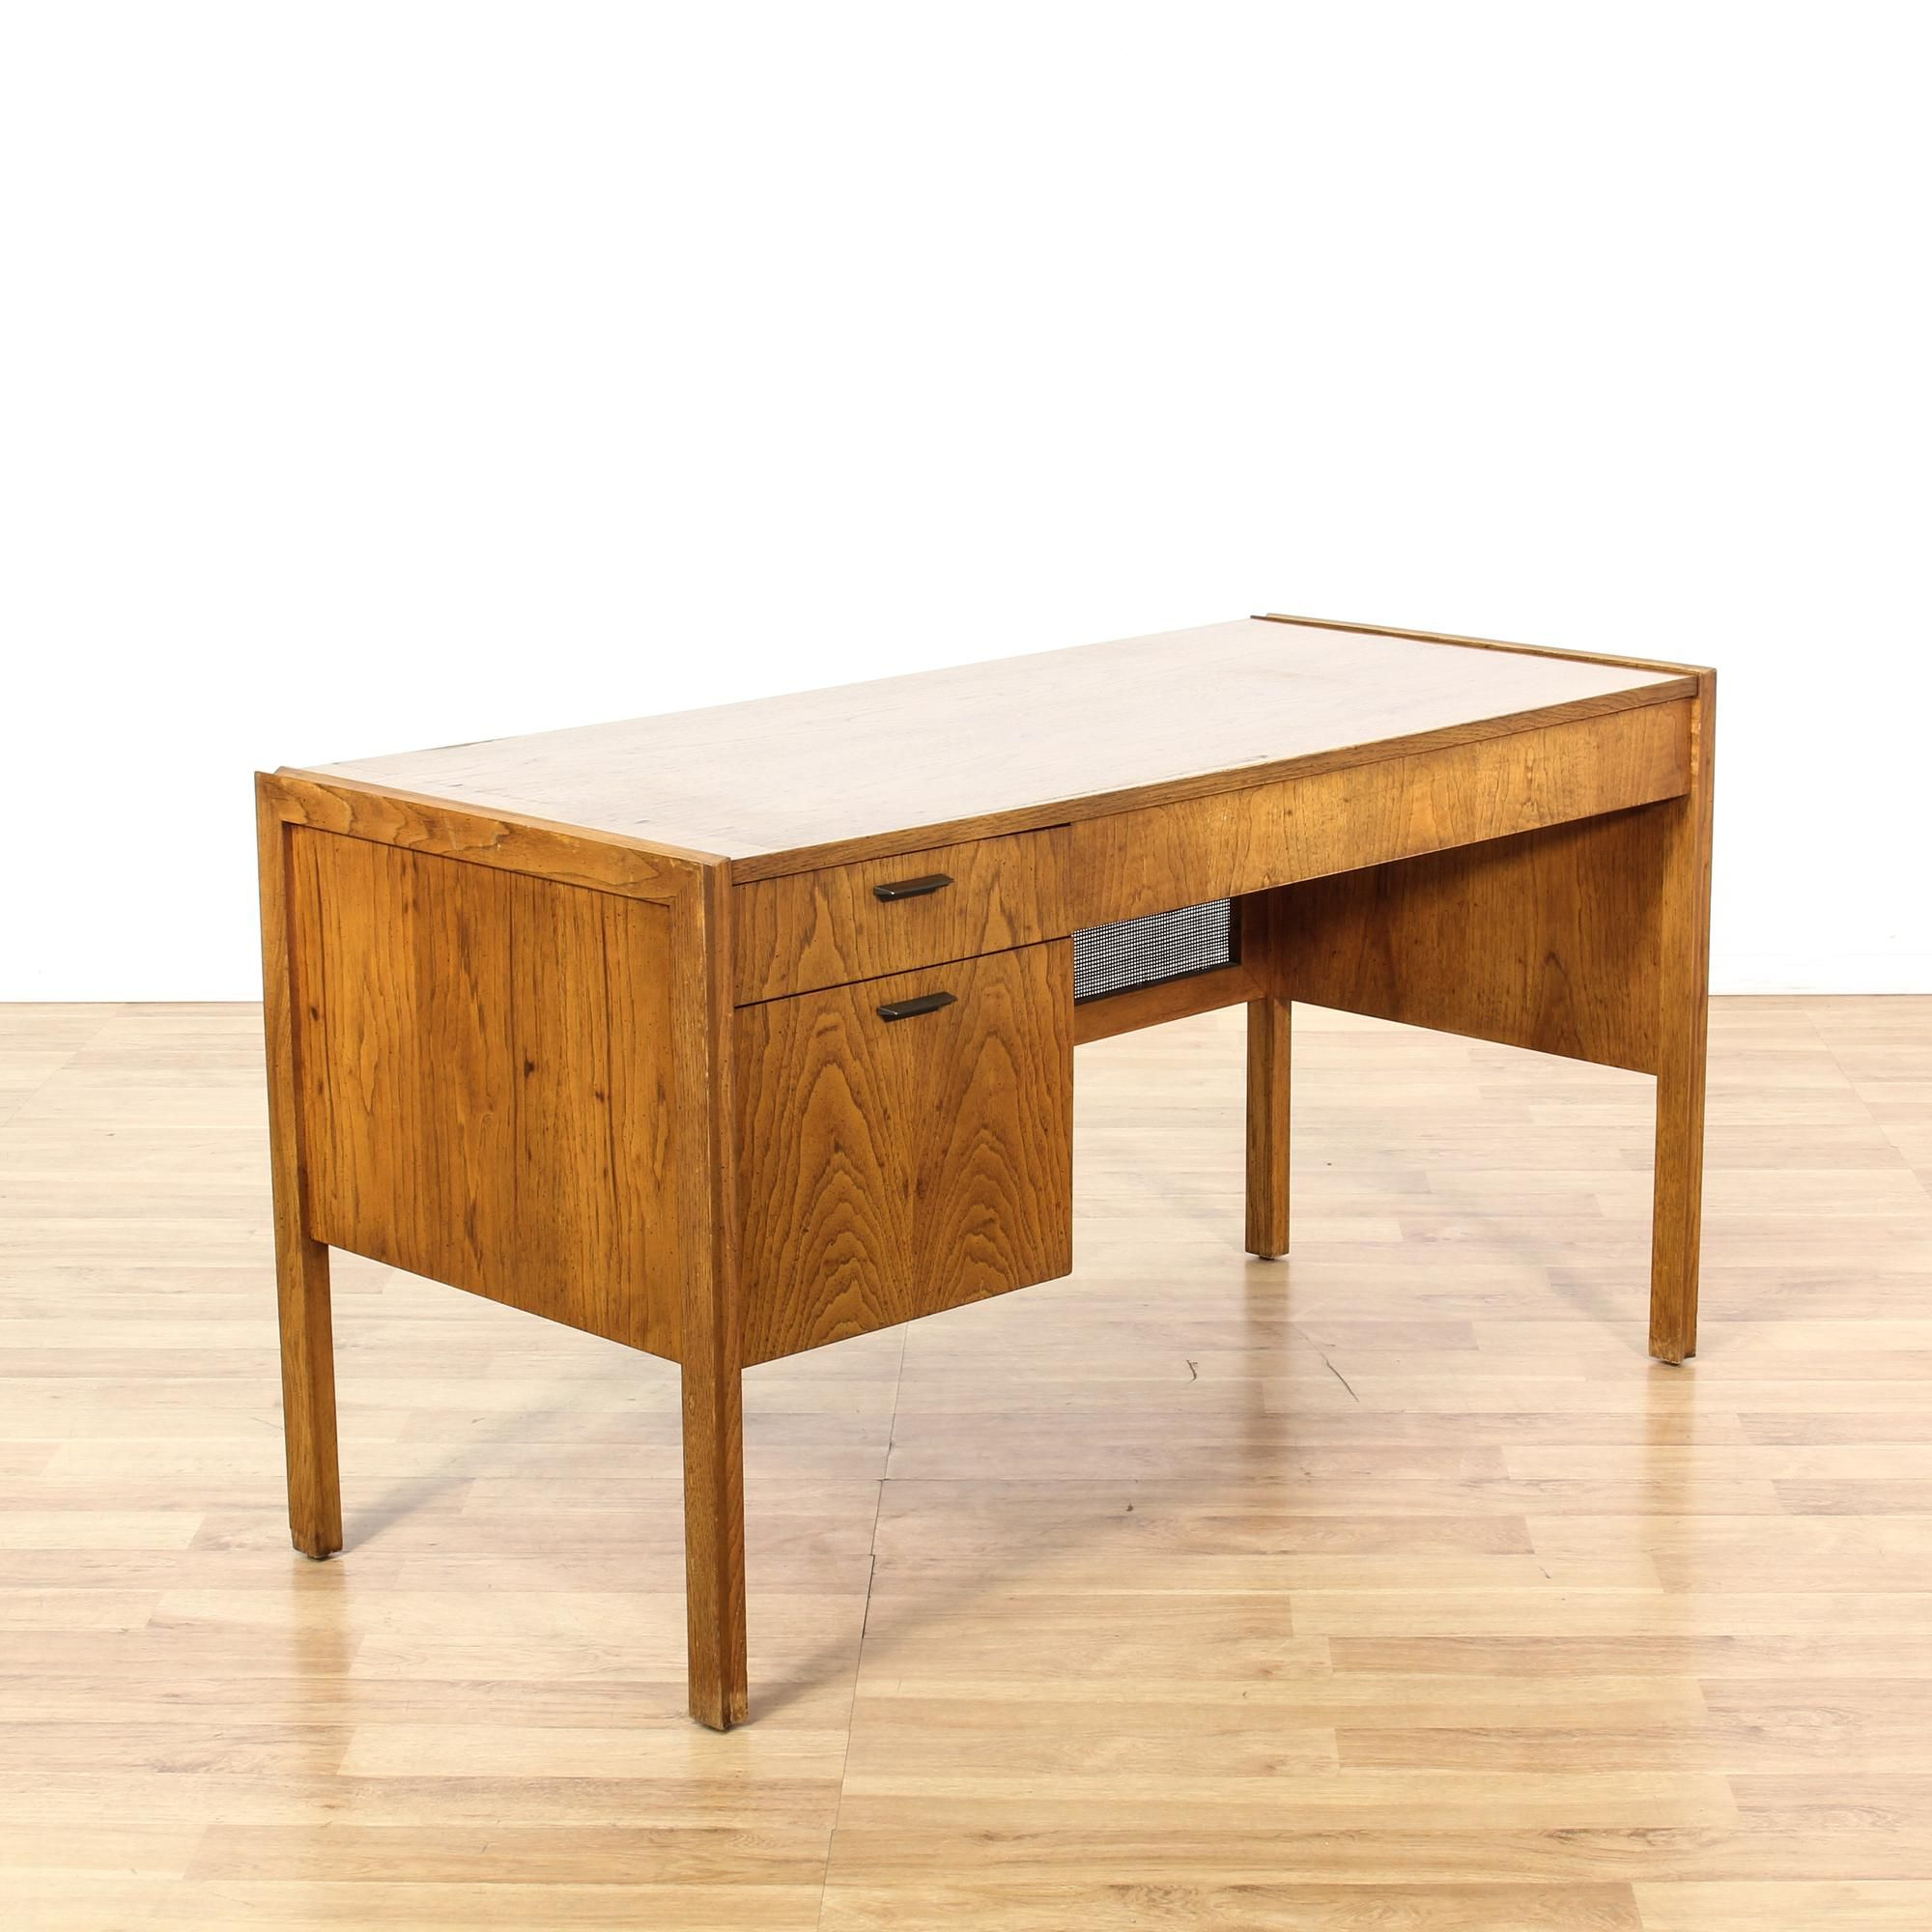 """This """"Founders"""" desk is featured in a solid wood with a gorgeous cherry finish. This mid century modern desk has 3 drawers in varying sizes, a woven back panel and simple straight legs. Sleek and stylish piece perfect for a home office! #americantraditional #desks #kneeholedesk #sandiegovintage #vintagefurniture"""